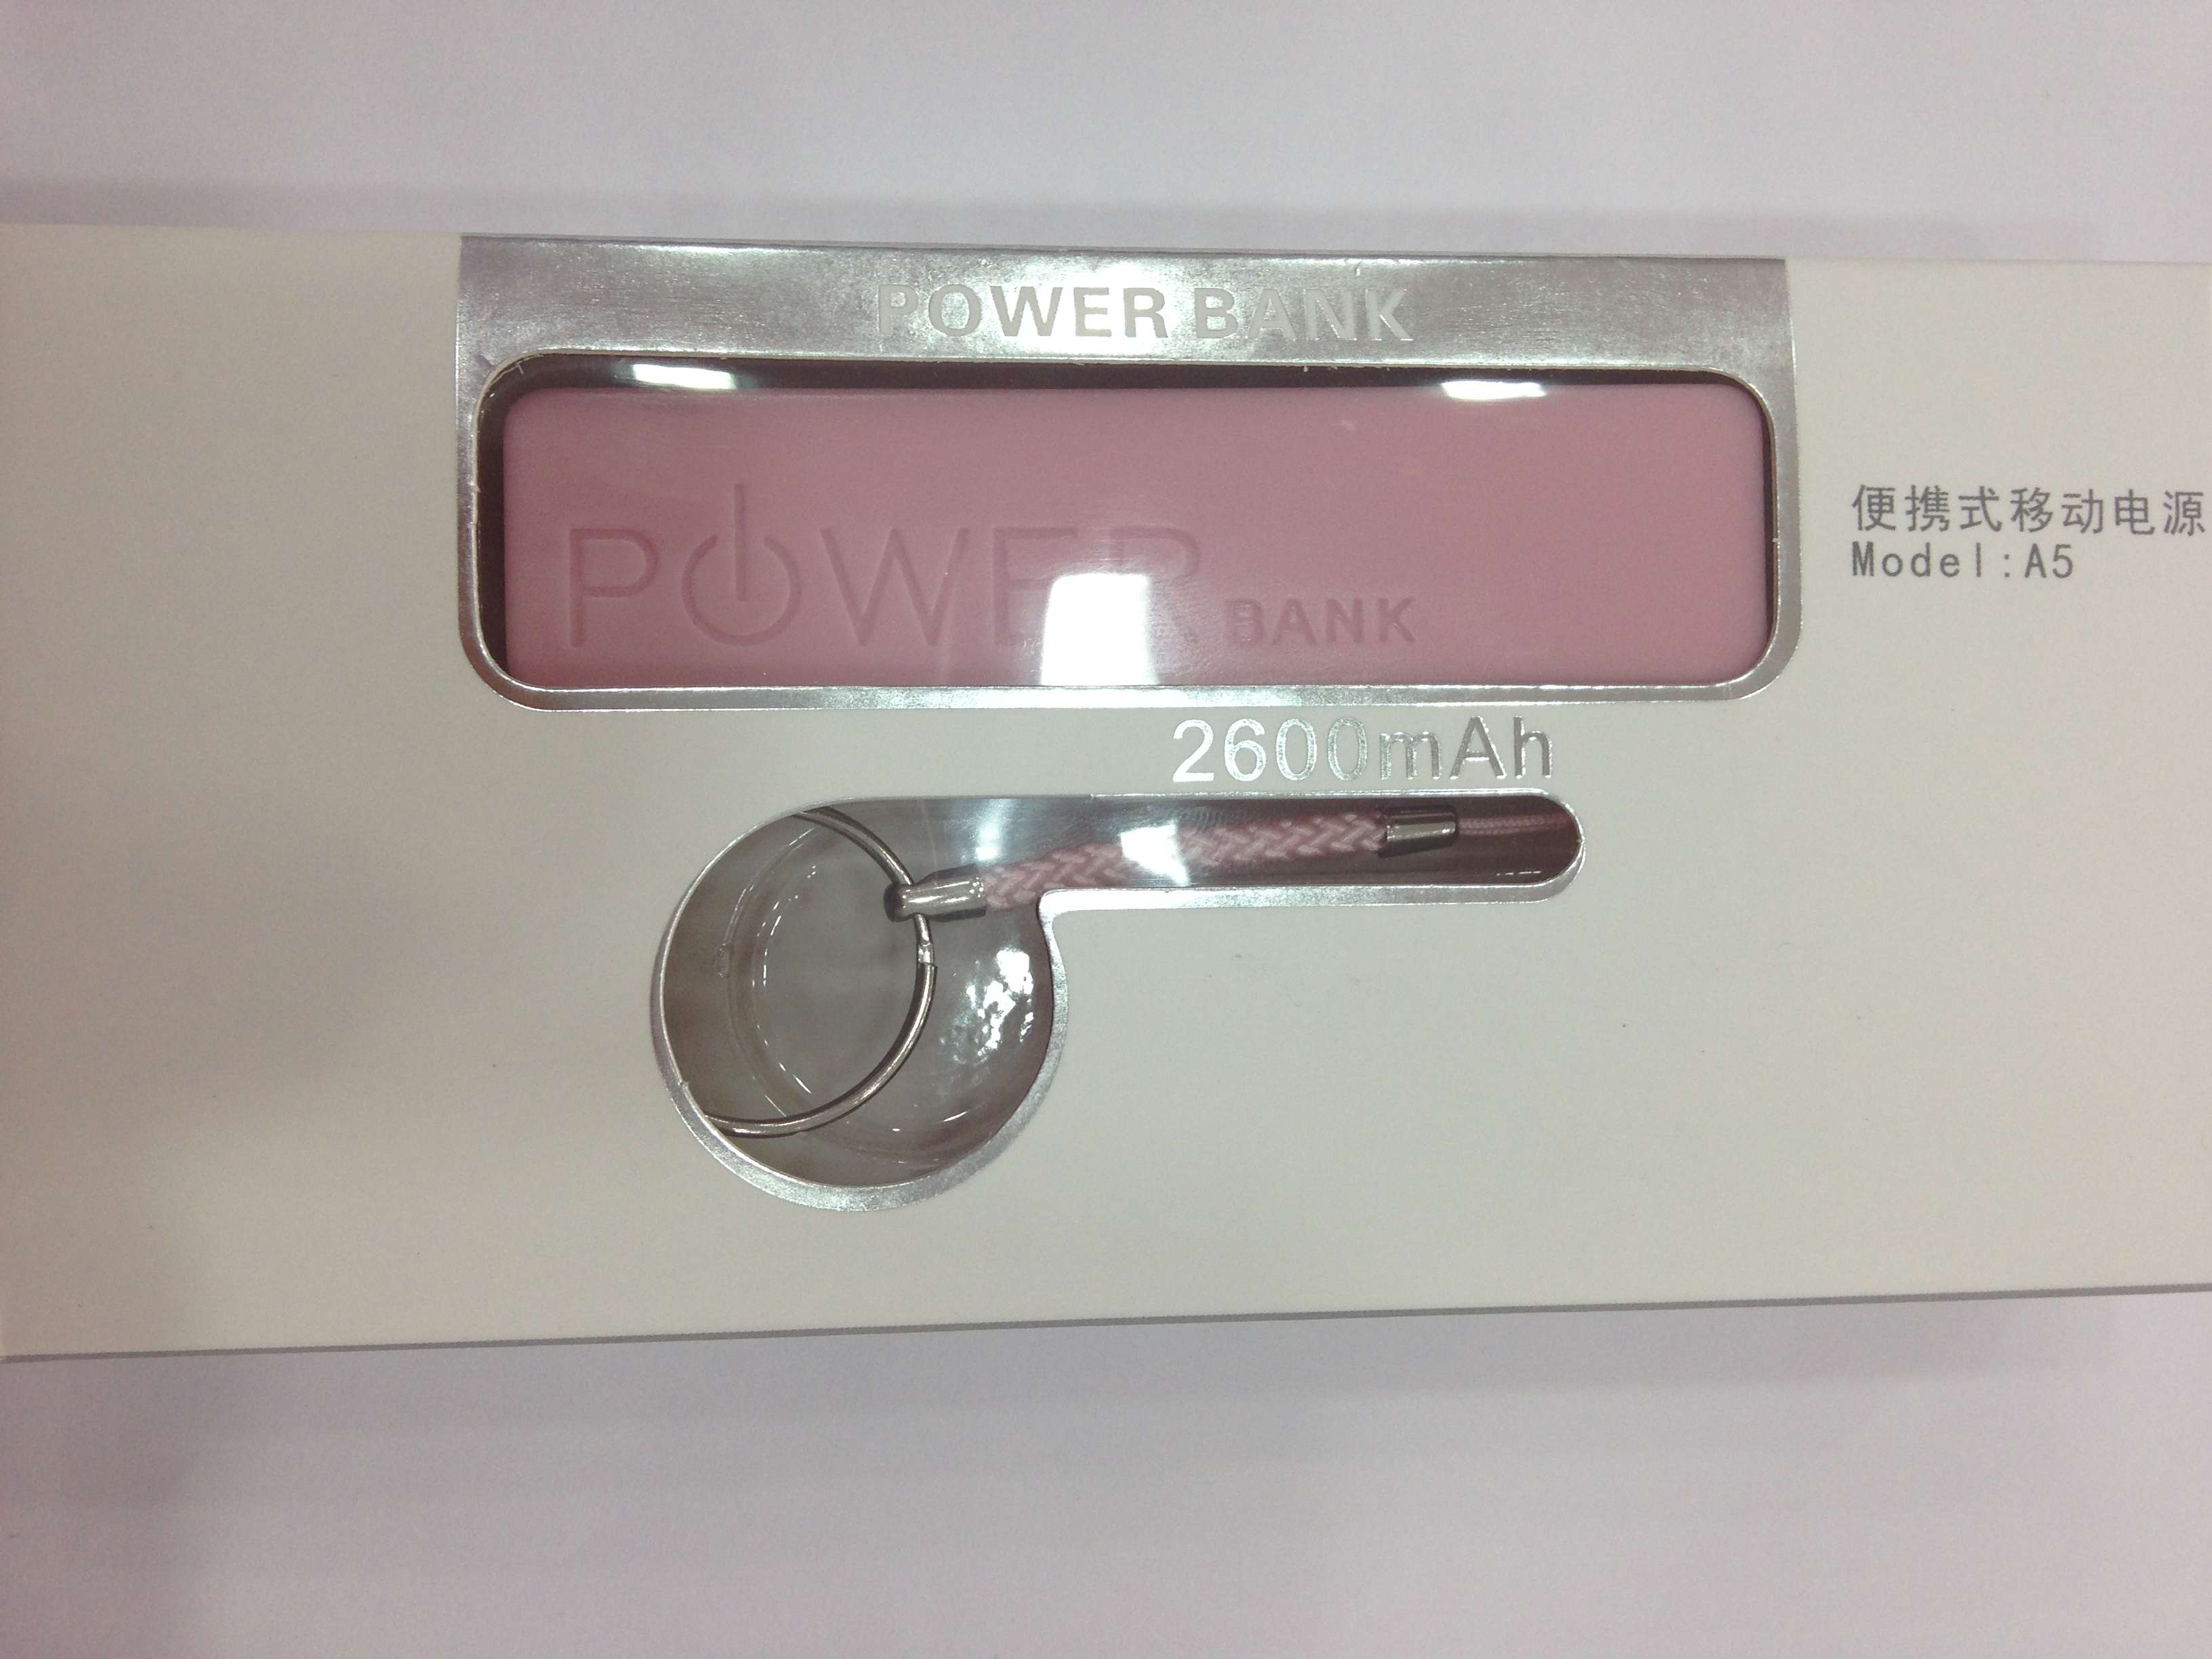 mini-perfume-power-bank-2600mah-itmarket-4-.jpg